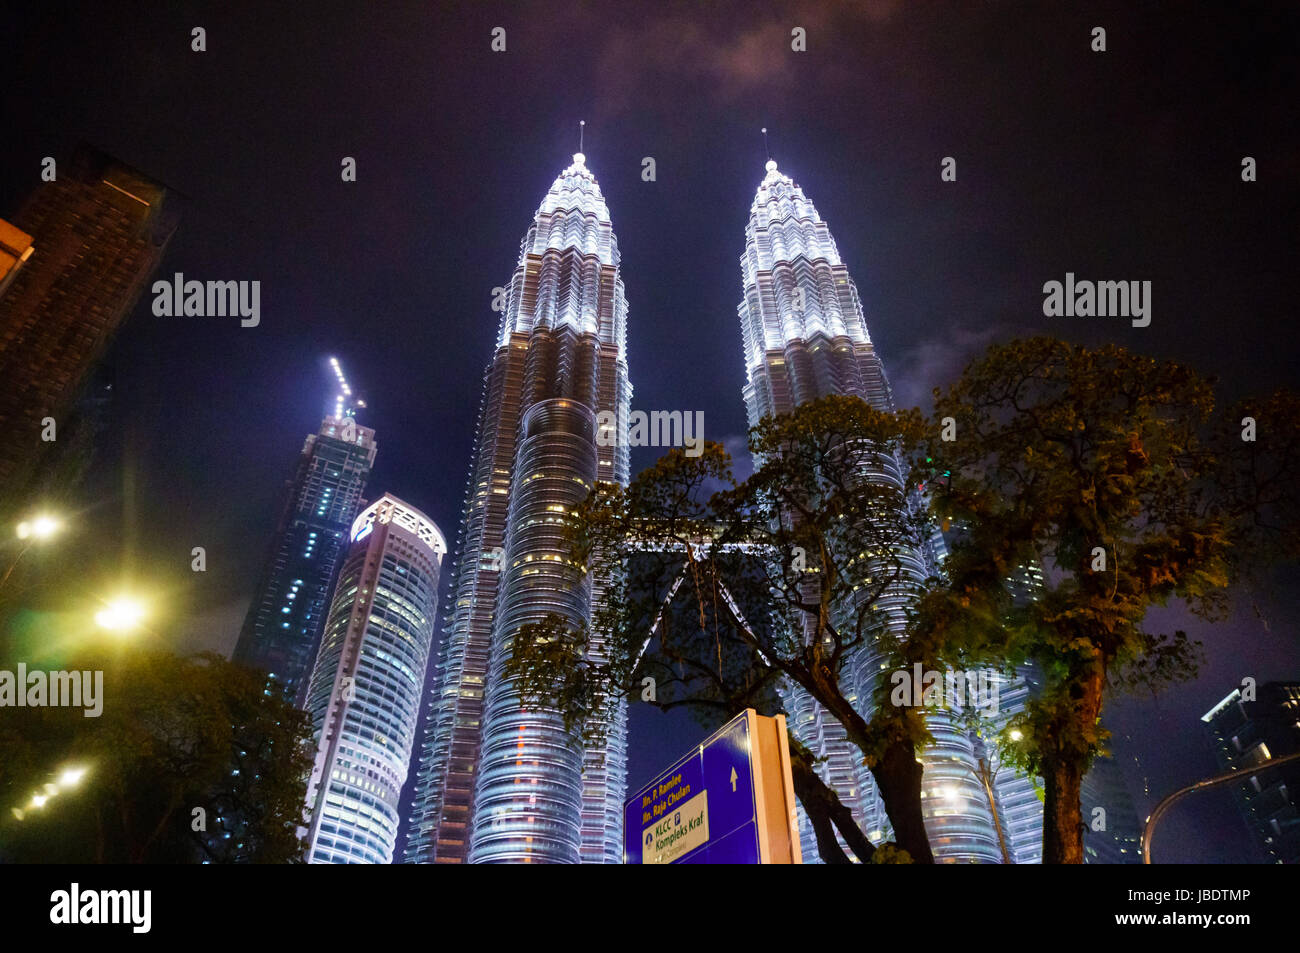 Kuala Lumpur, Malaysia - 5th May 2017: Petronas twin towers on a rainy night with a cloudy sky and pouring rain. - Stock Image